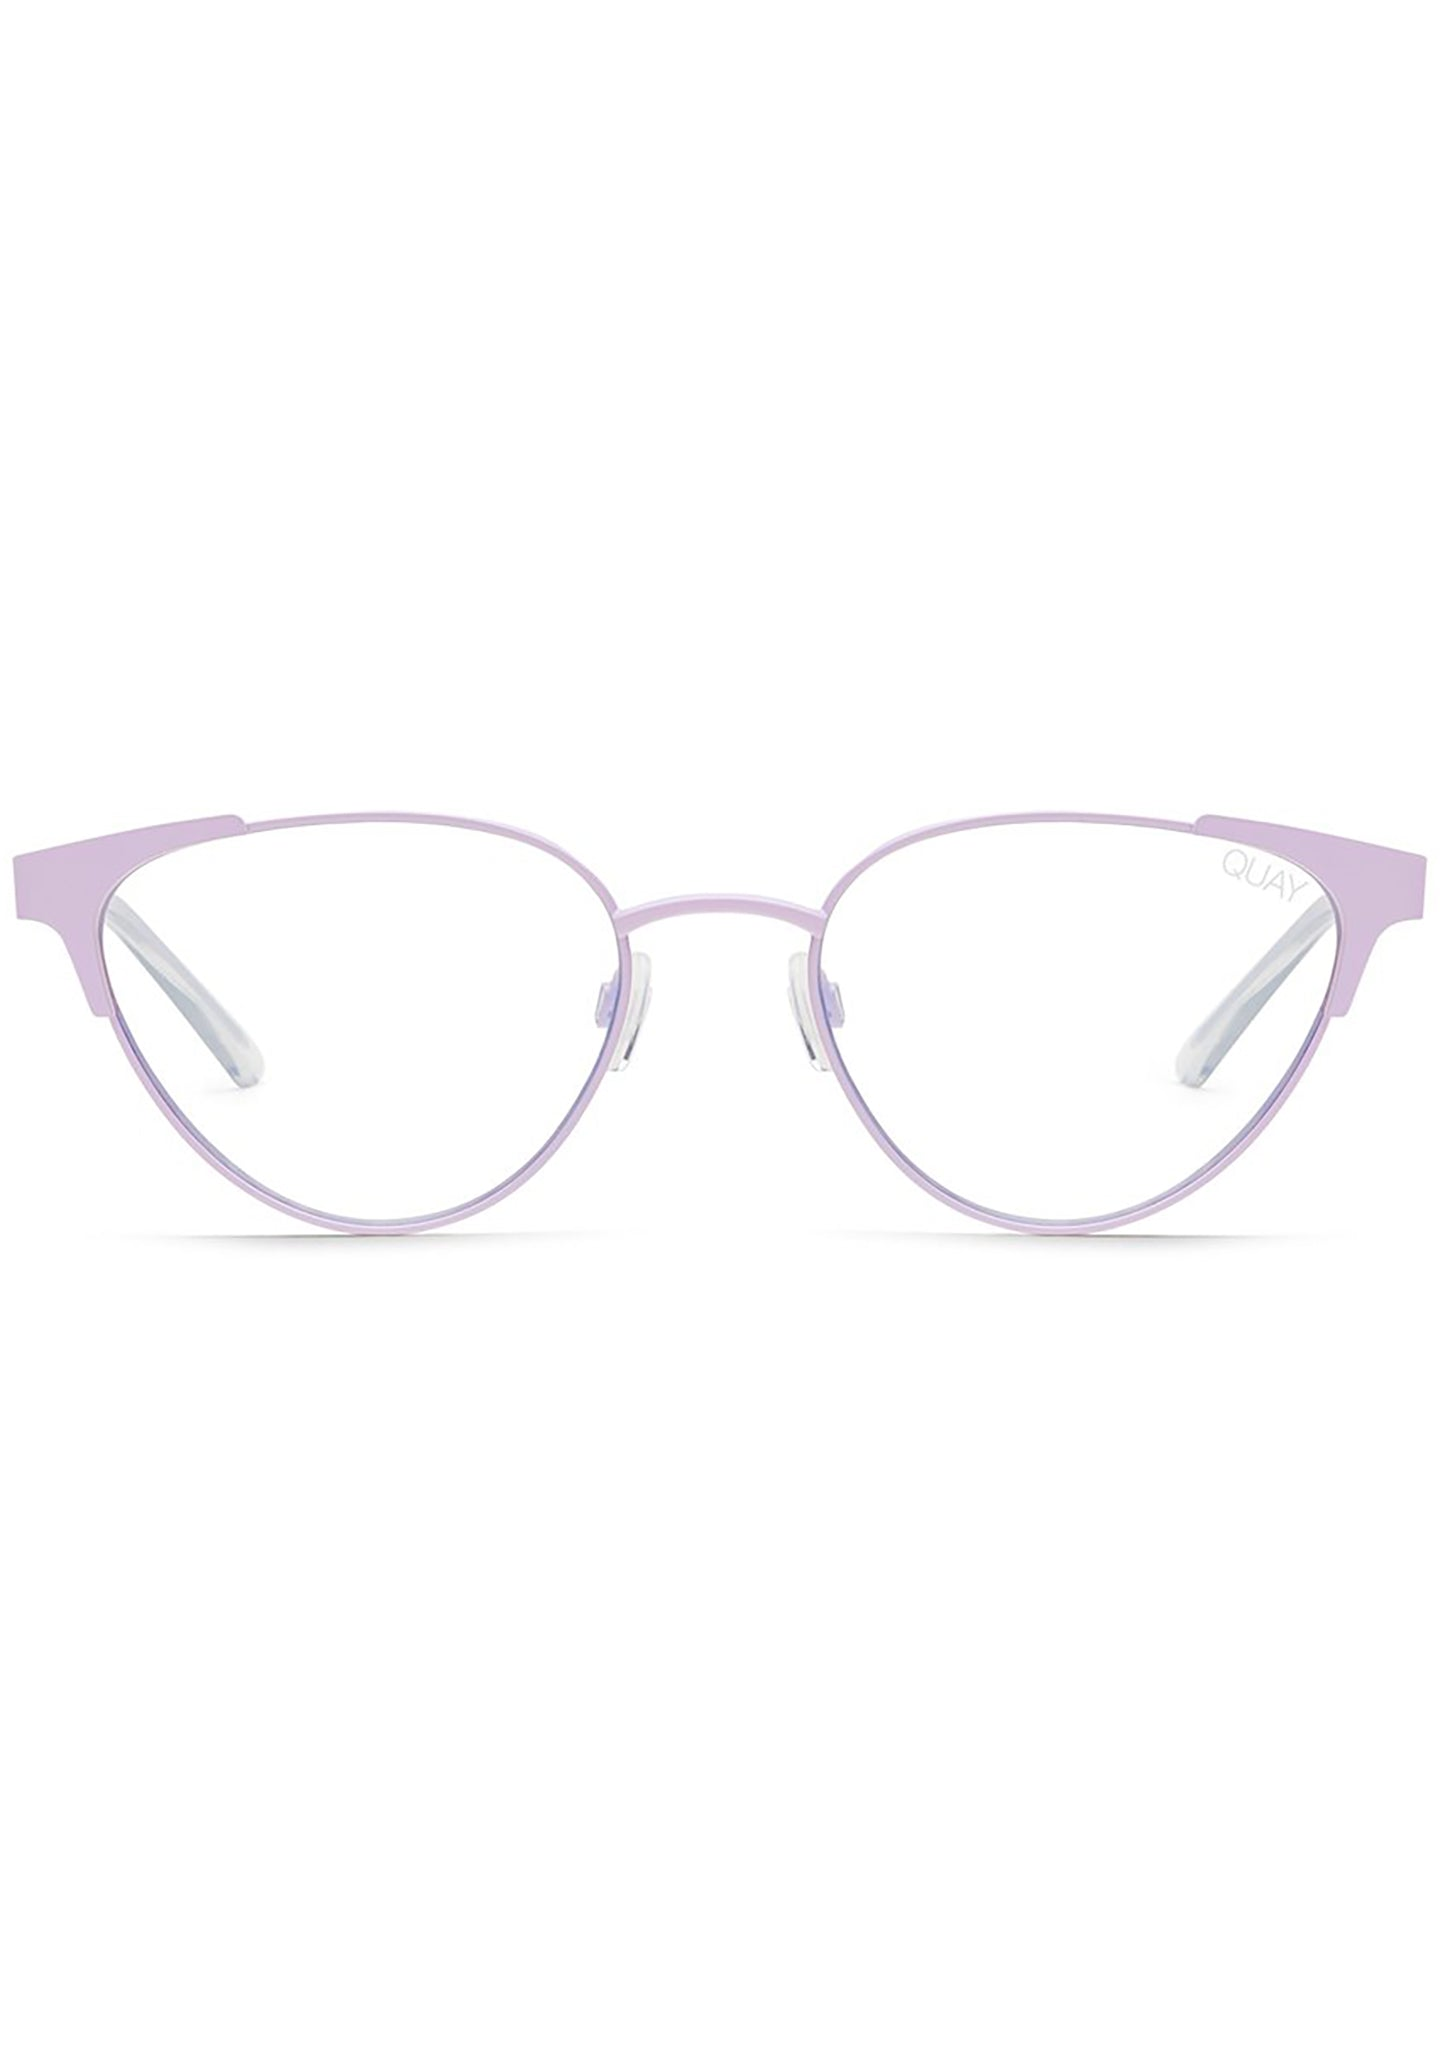 Blue Light Song Bird Glasses in Lavender/Clear